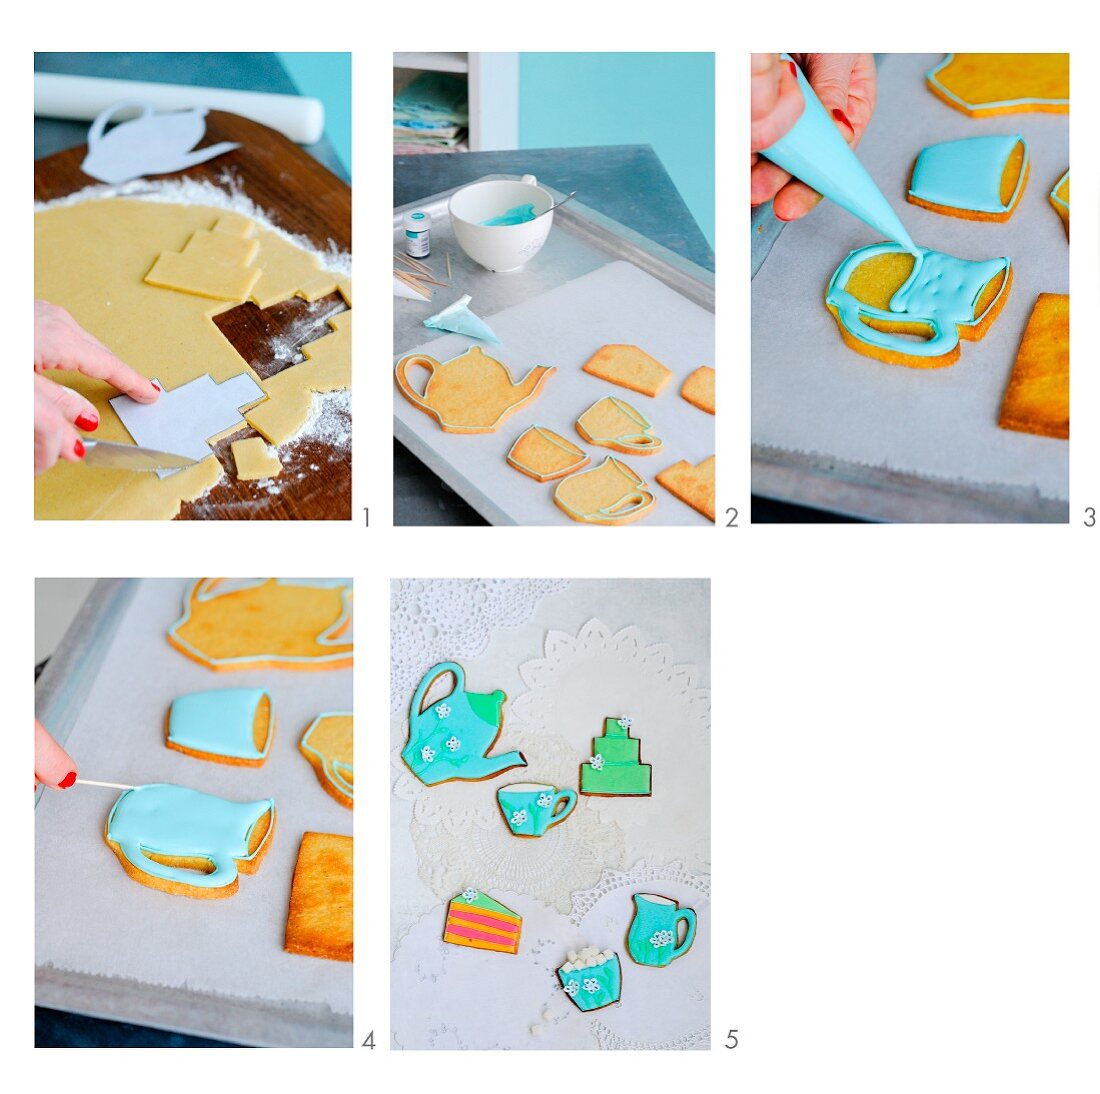 Biscuits for a coffee morning being made